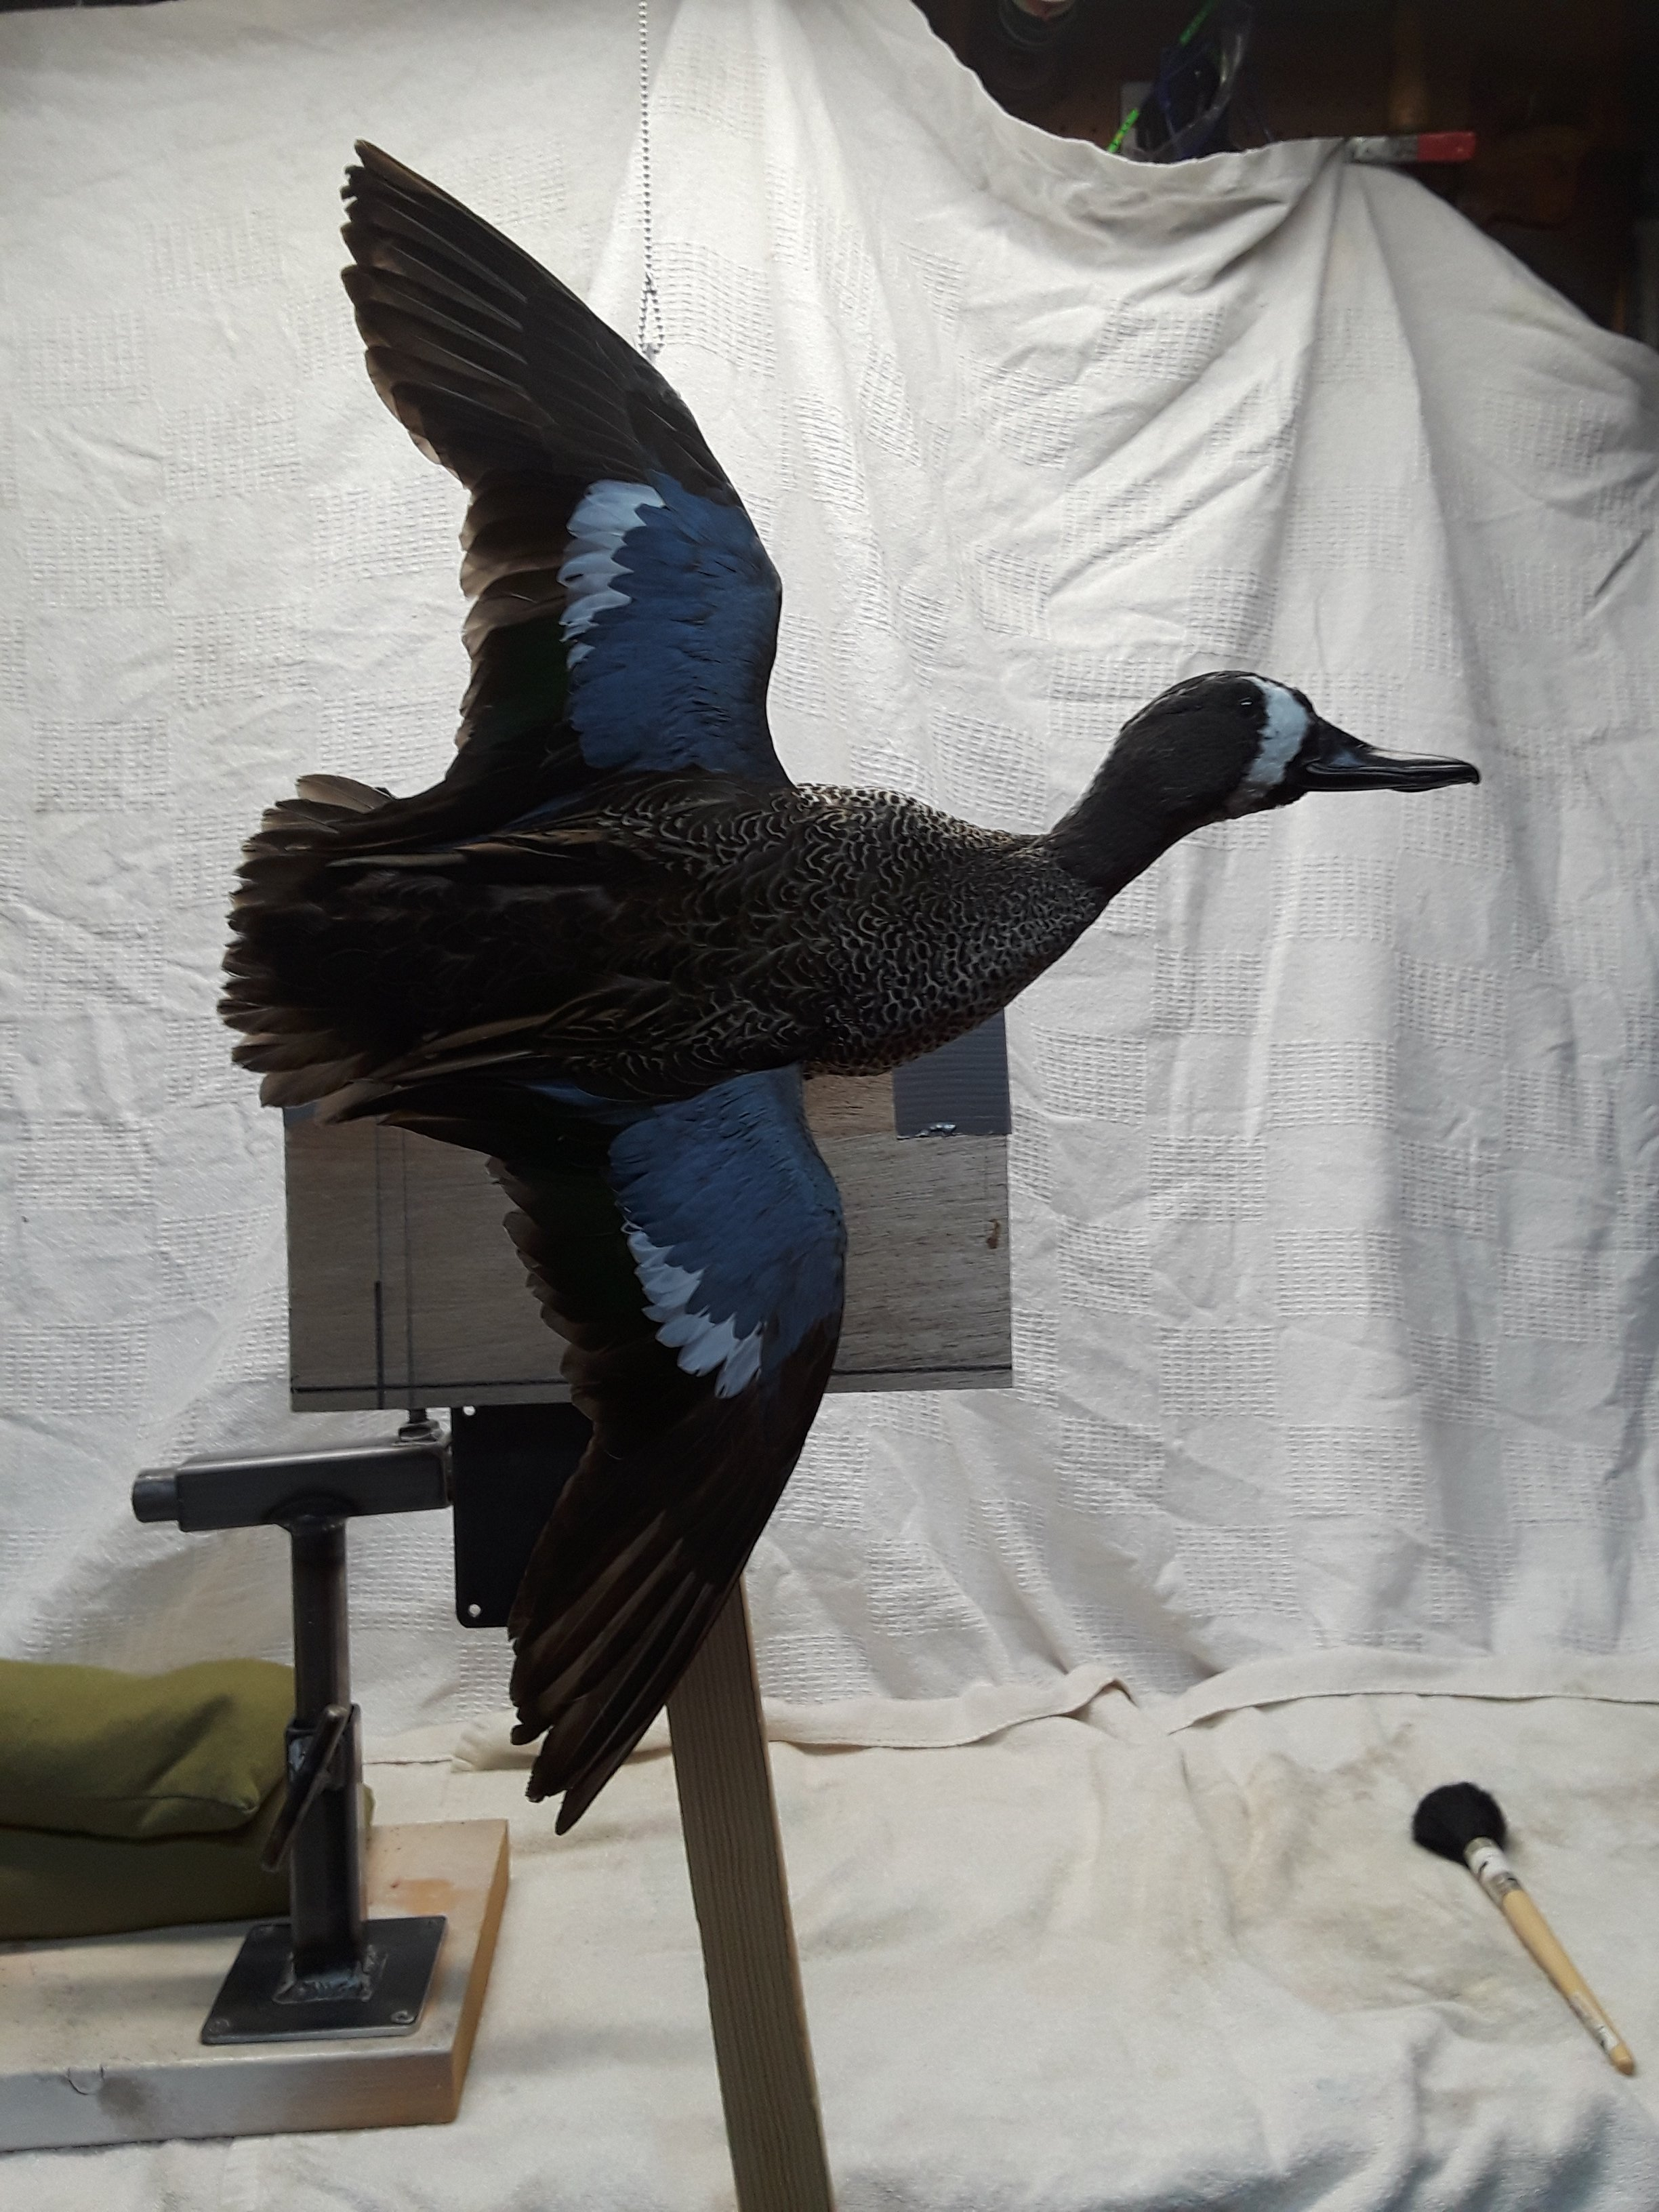 blue winge teal drake flying 2.jpg